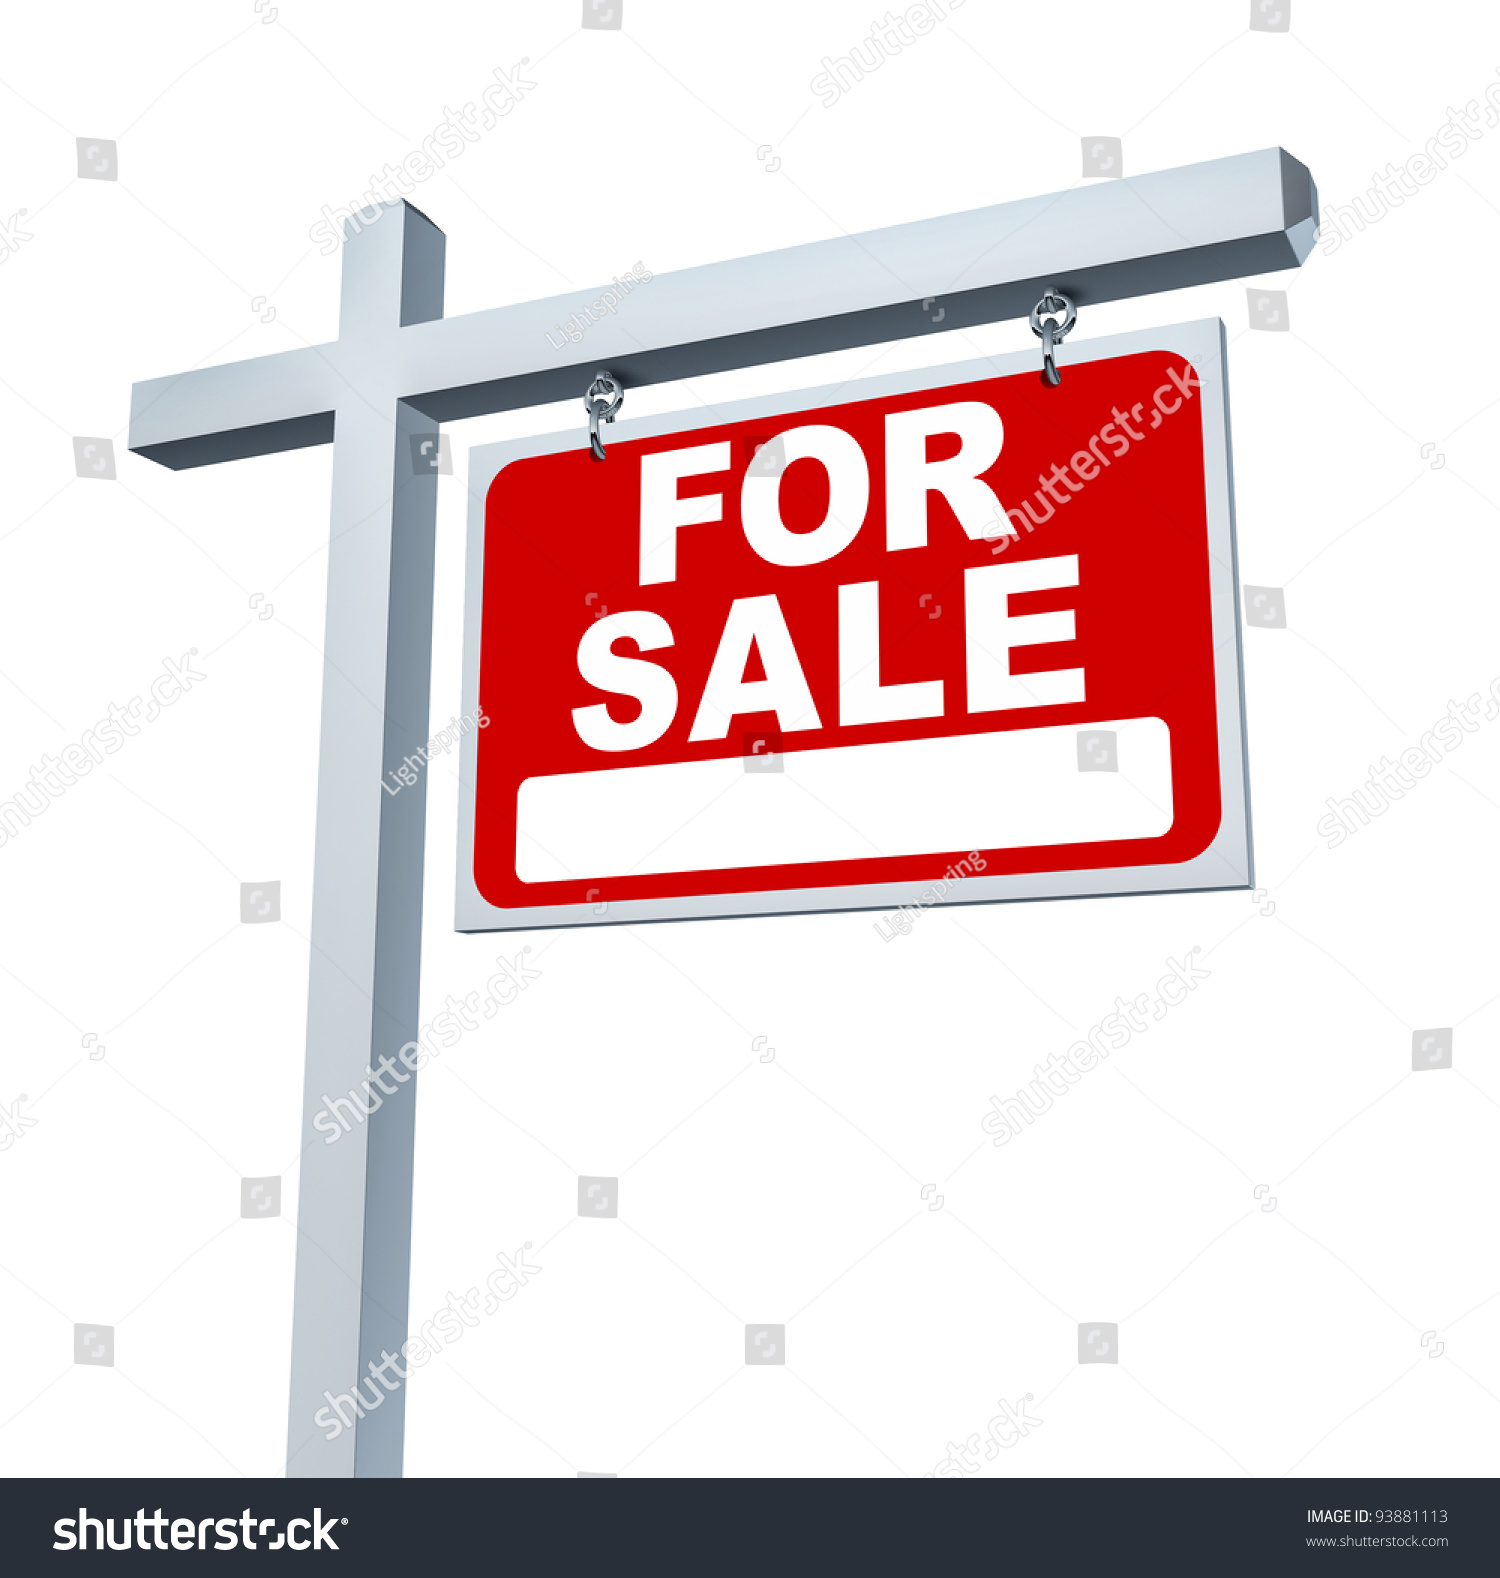 Z Homes For Sale Stock Photo Real Estate Red For Sale Sign